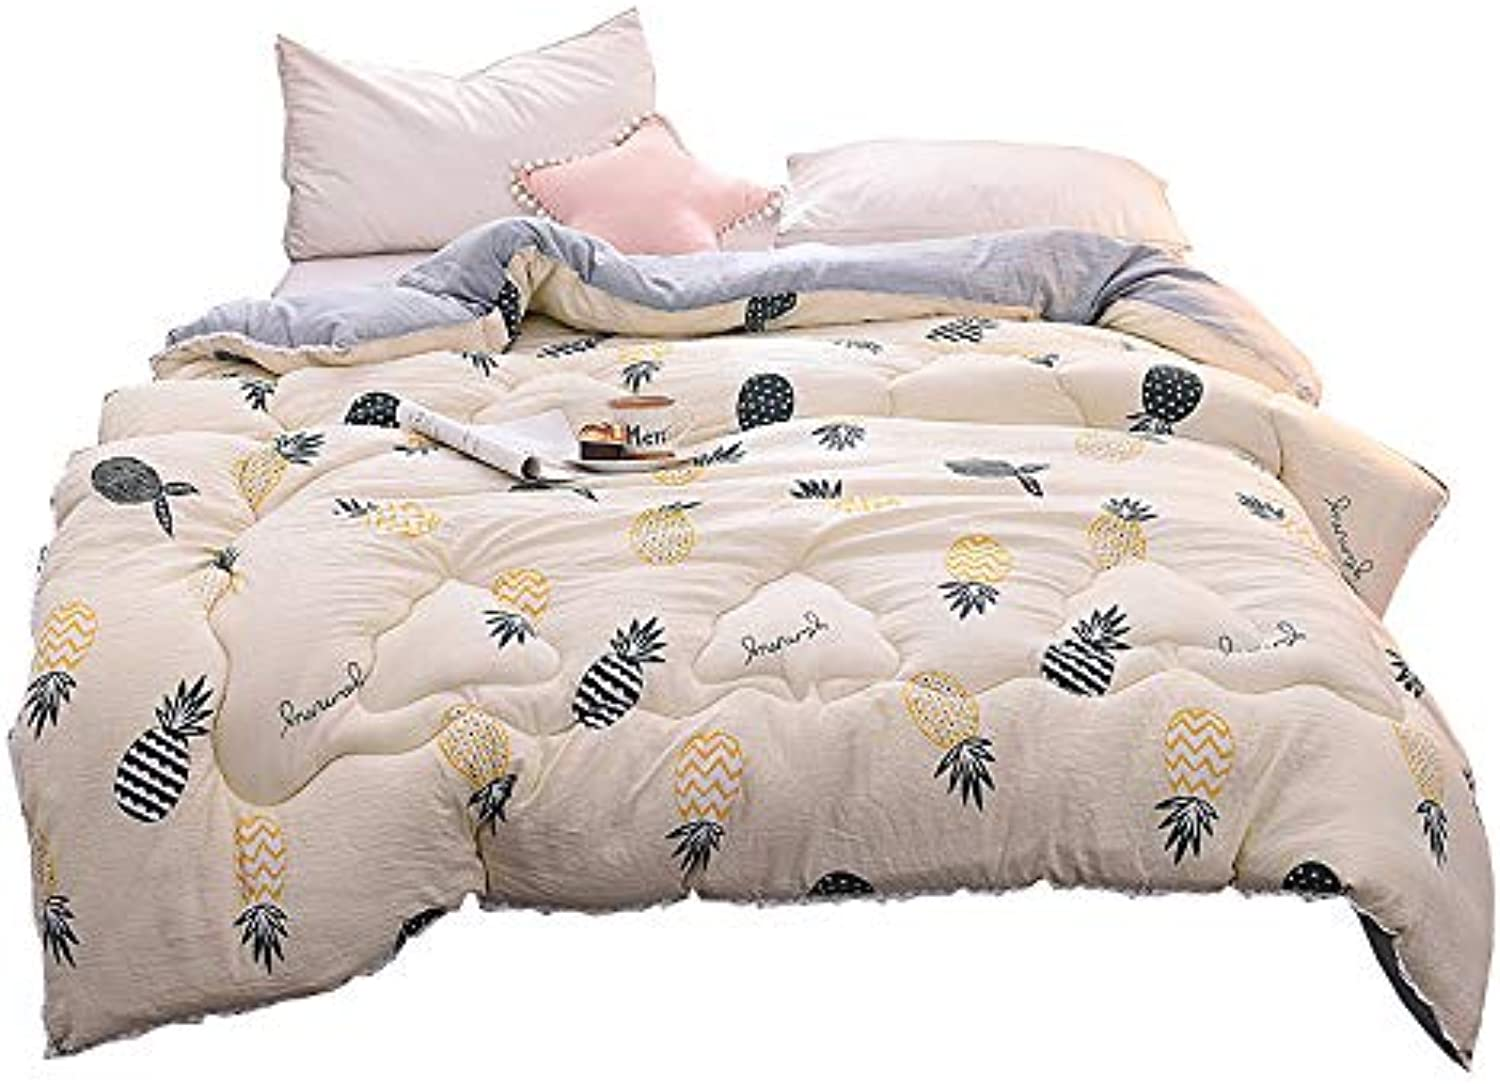 Single Double Quilt Quilted Comforter with Corner Tabs Double Quilt Four Seasons Thicken Warm and Soft for All Season (Size   150cmx200cm2kg)